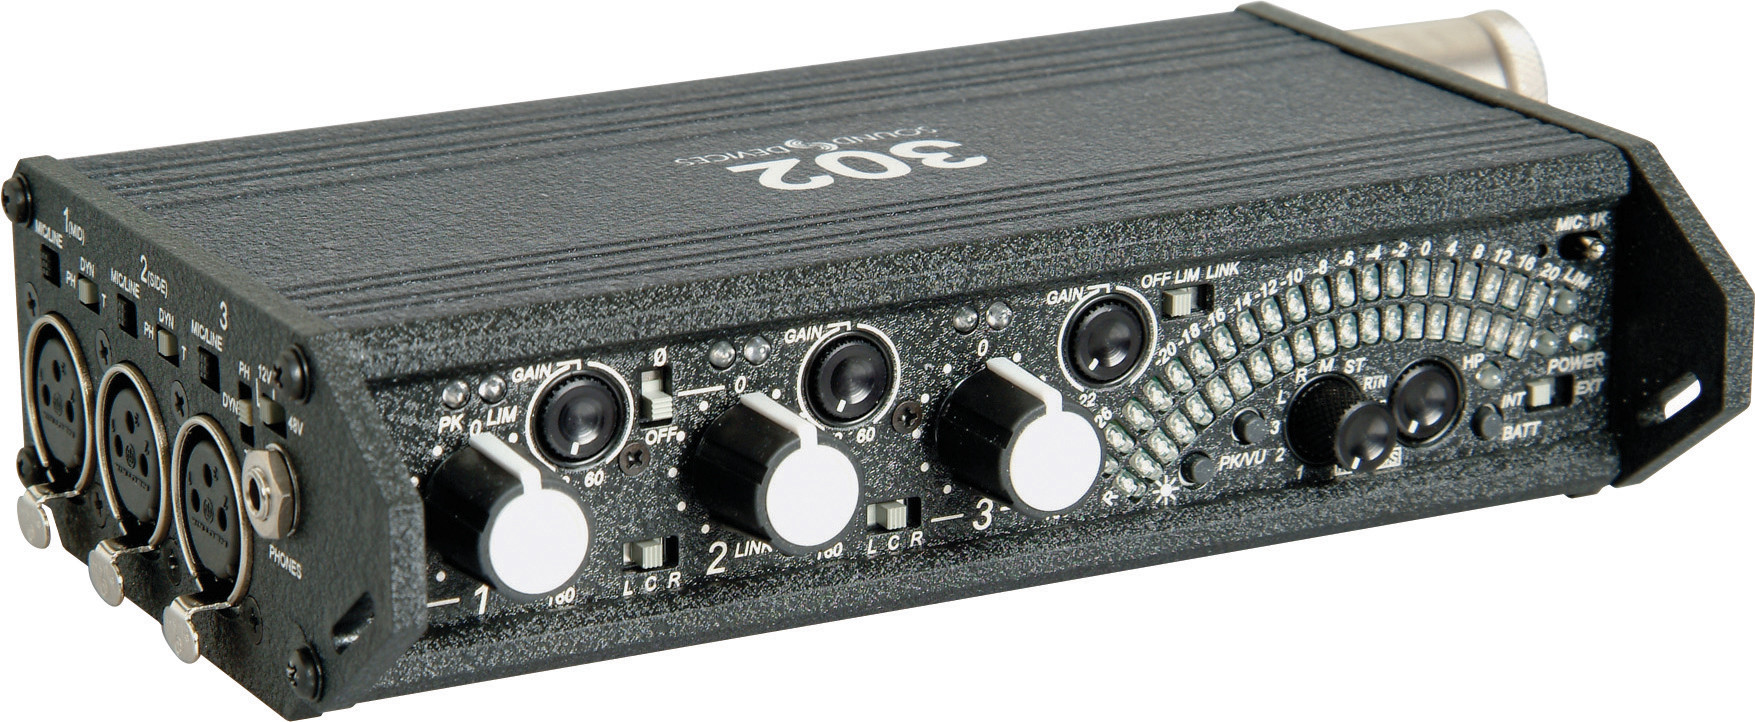 Sound Devices 302 Field Mixer Middlebury Film And Media Production Hub 3 Channel Audio